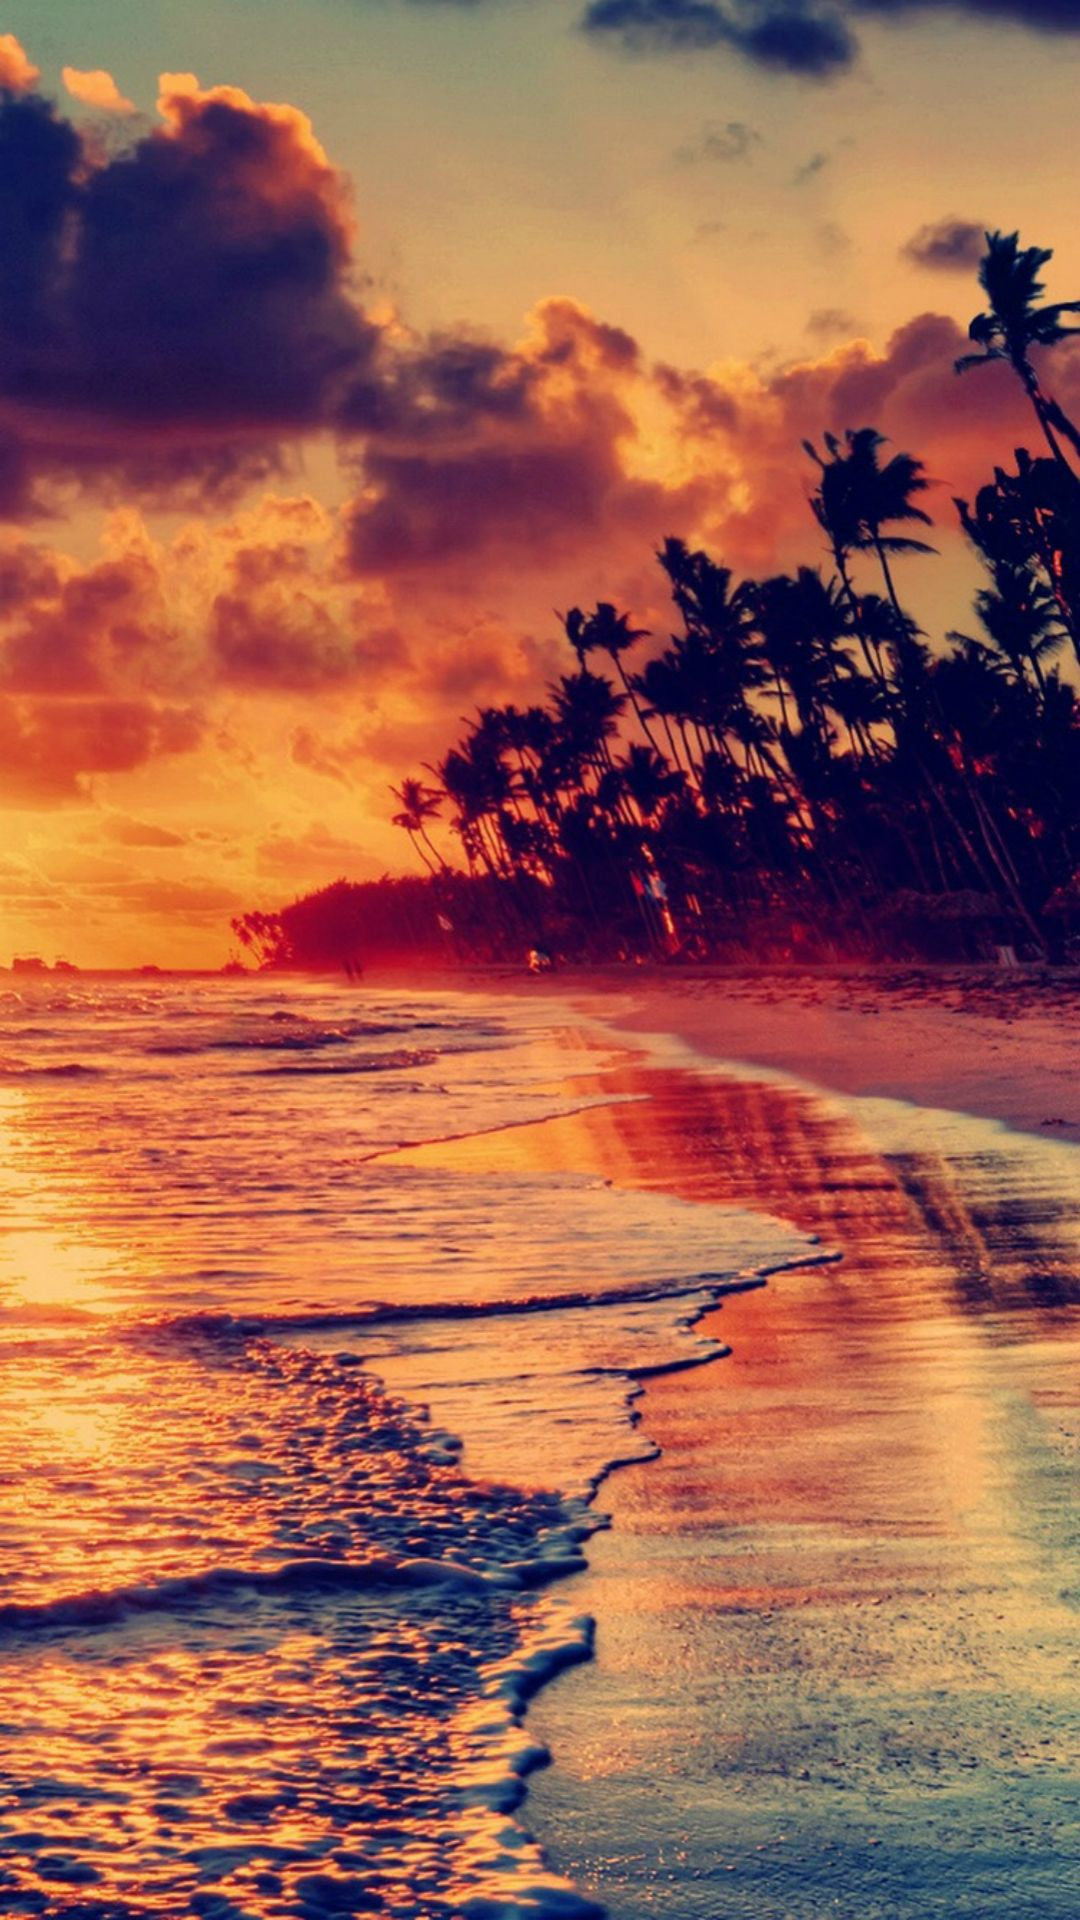 65 NATURAL IPHONE WALLPAPERS FOR THE NATURE LOVERS | Sunset beach ...